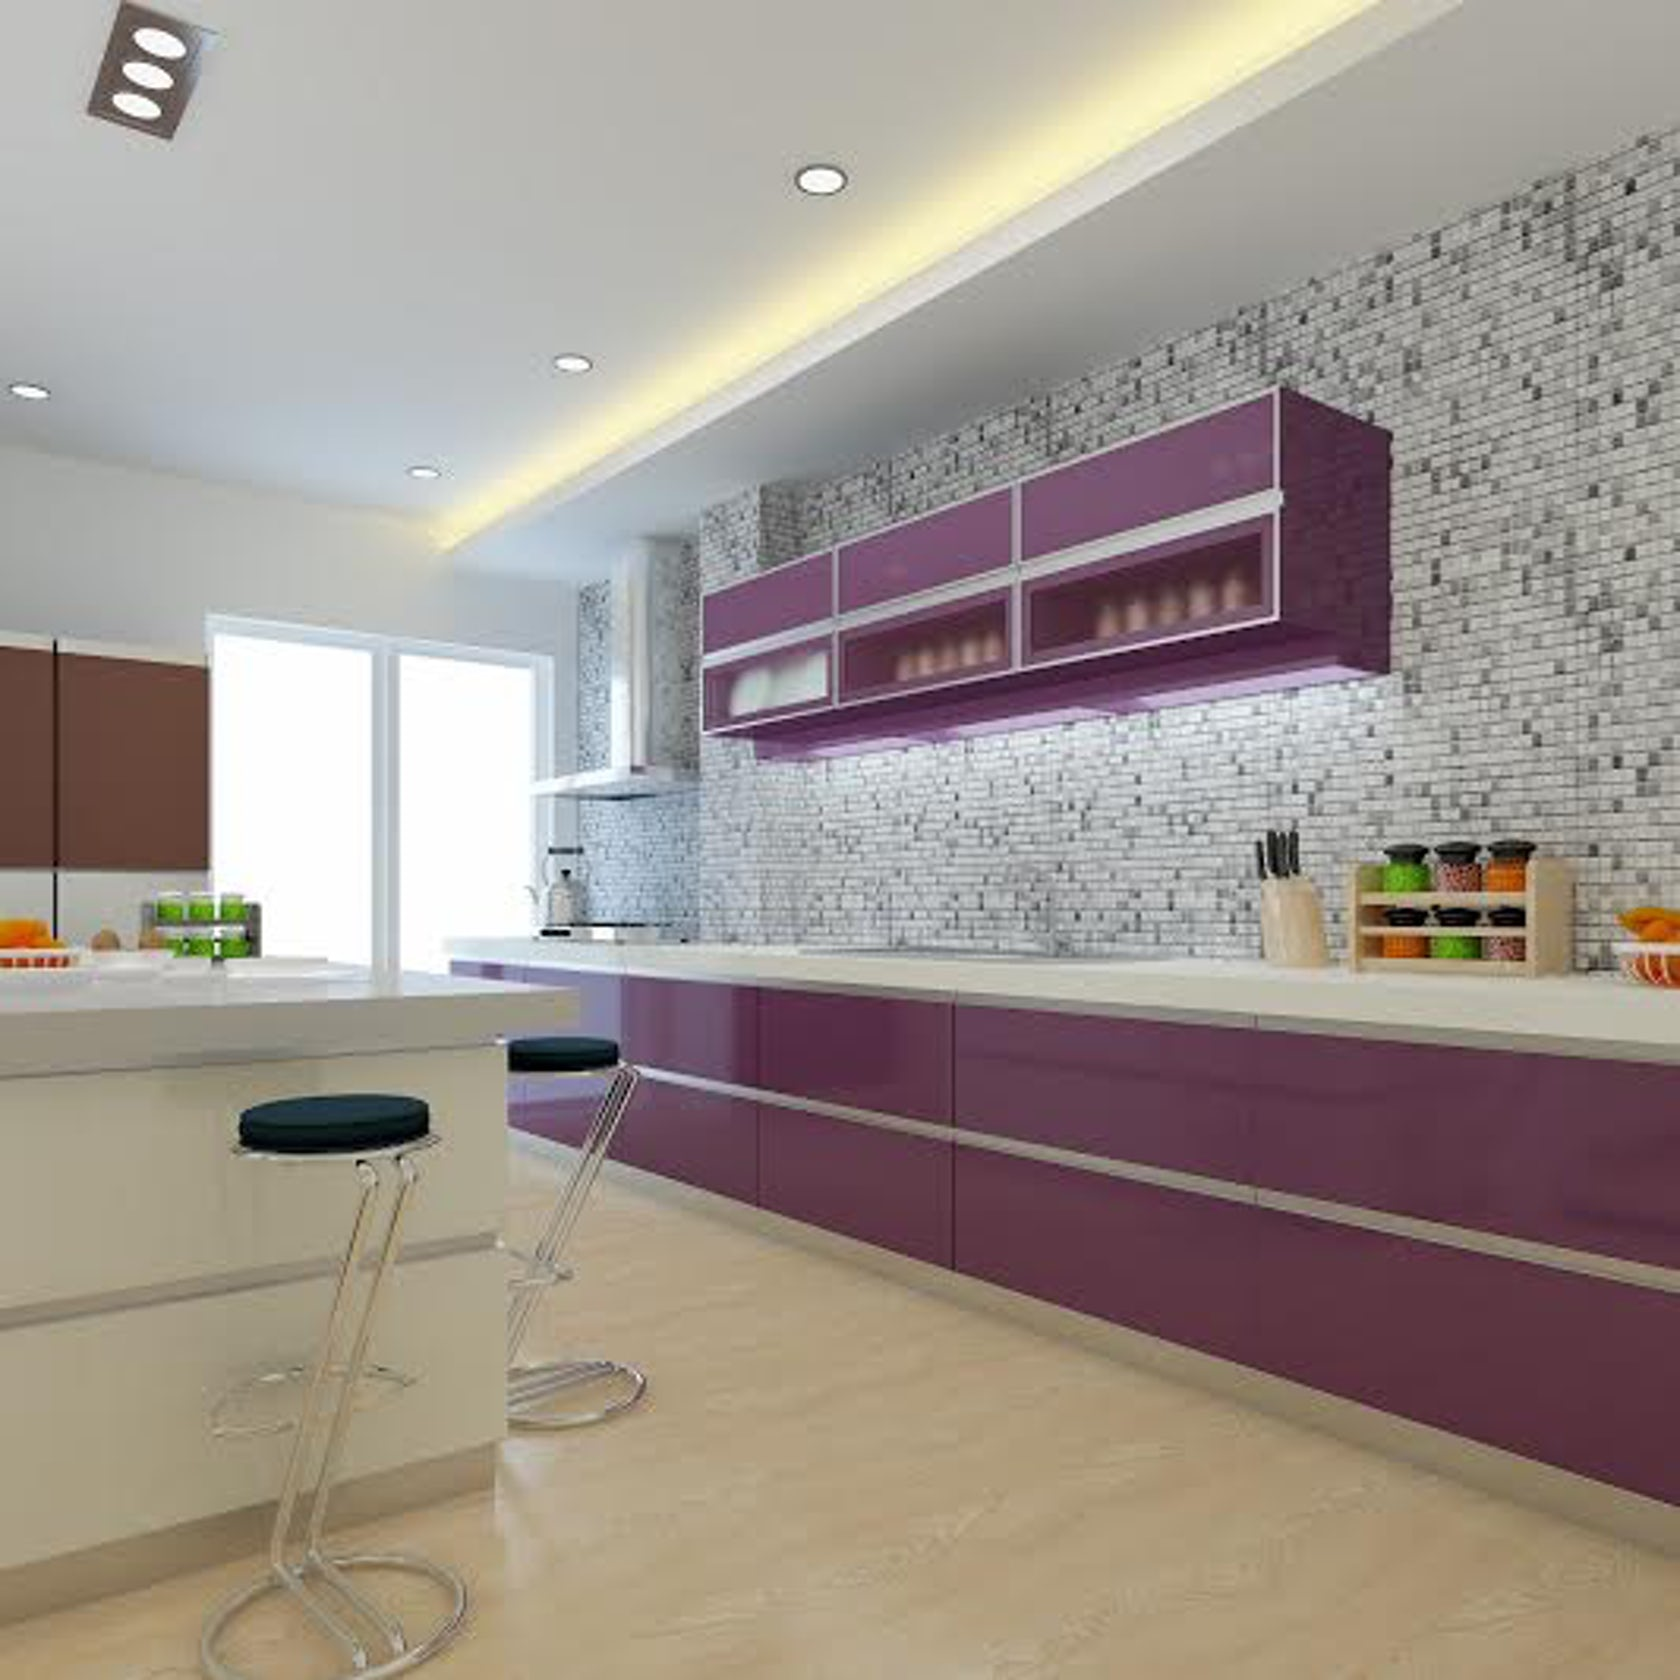 PhotoRealistic Rendering Of Kitchen